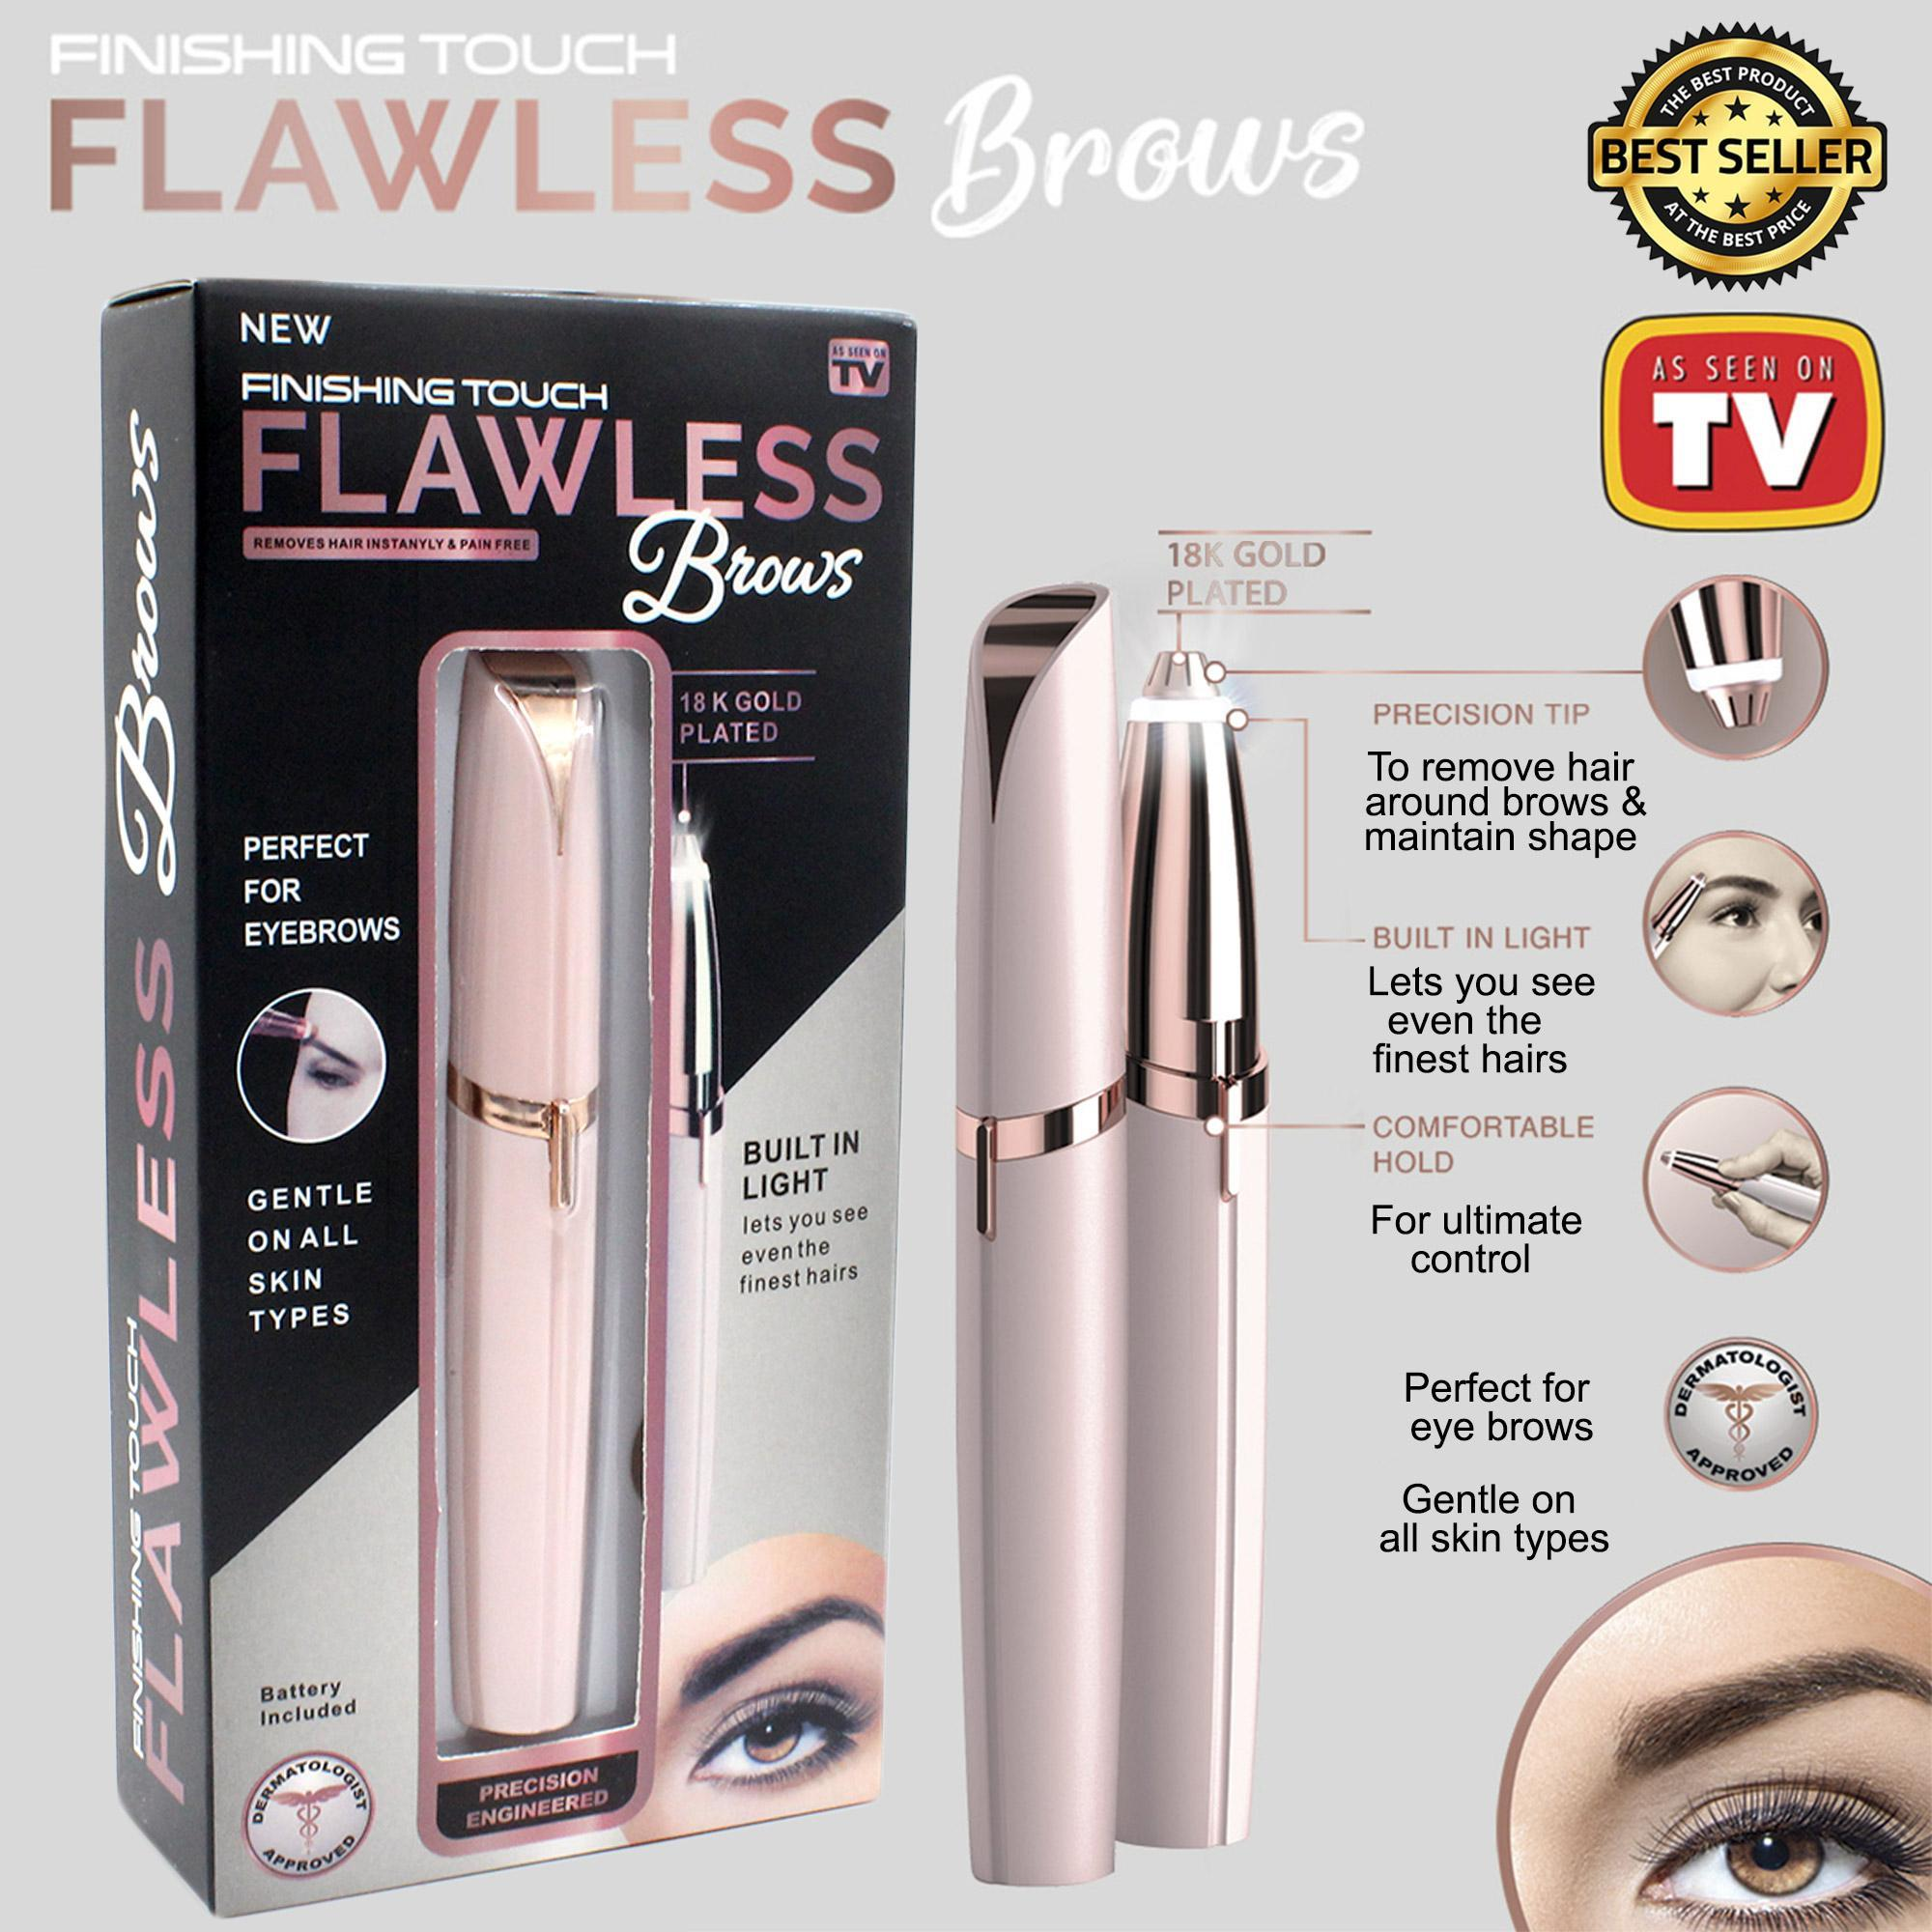 Flawless Brows Eyebrow Hair Remover, Blush by Finishing A Touch by JUST4U Philippines